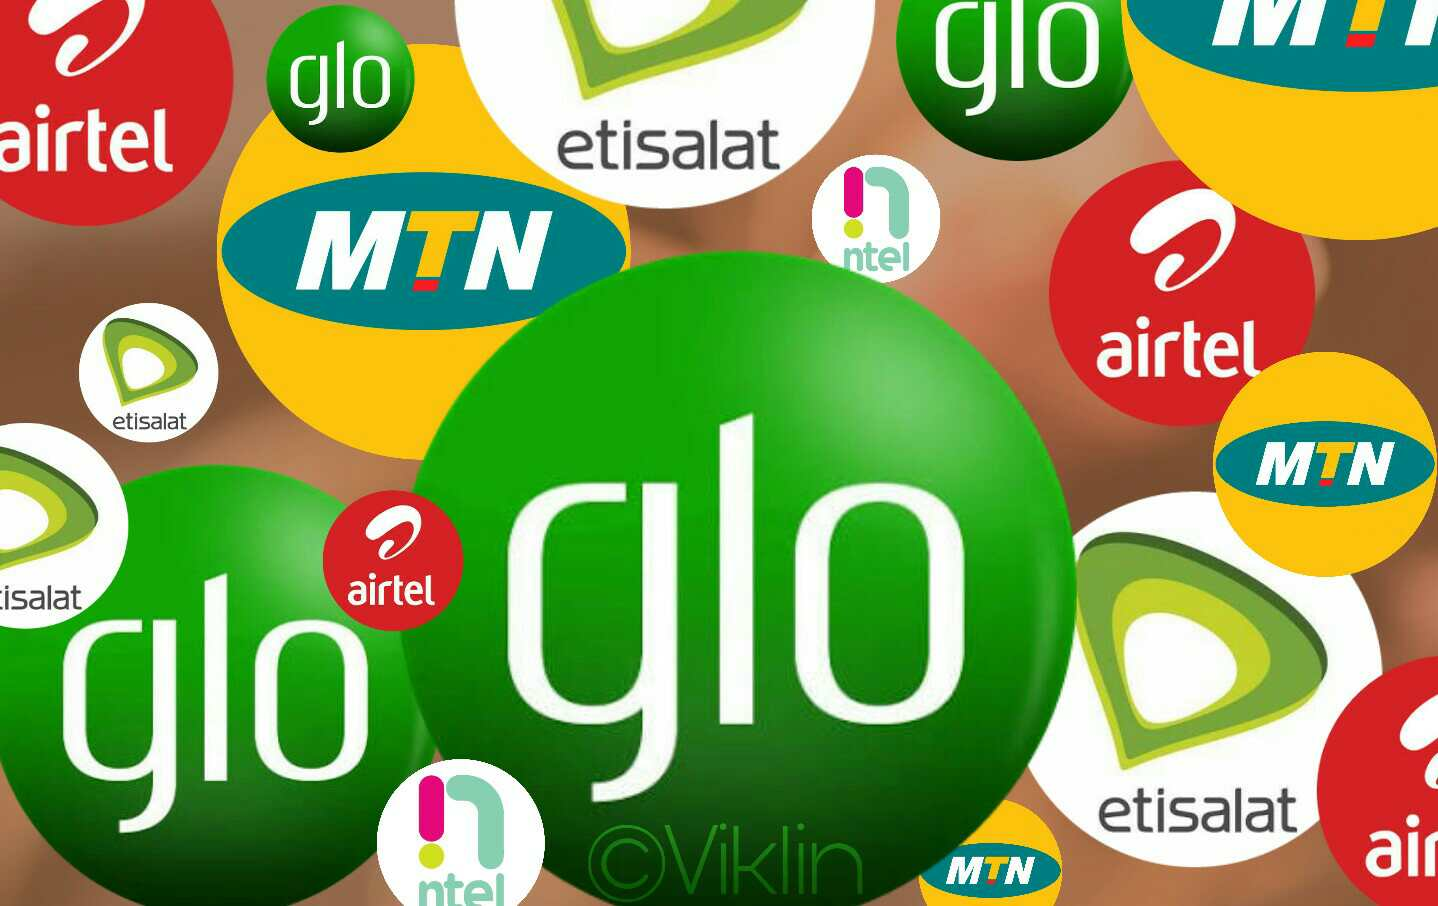 How to become MTN Agent in Nigeria